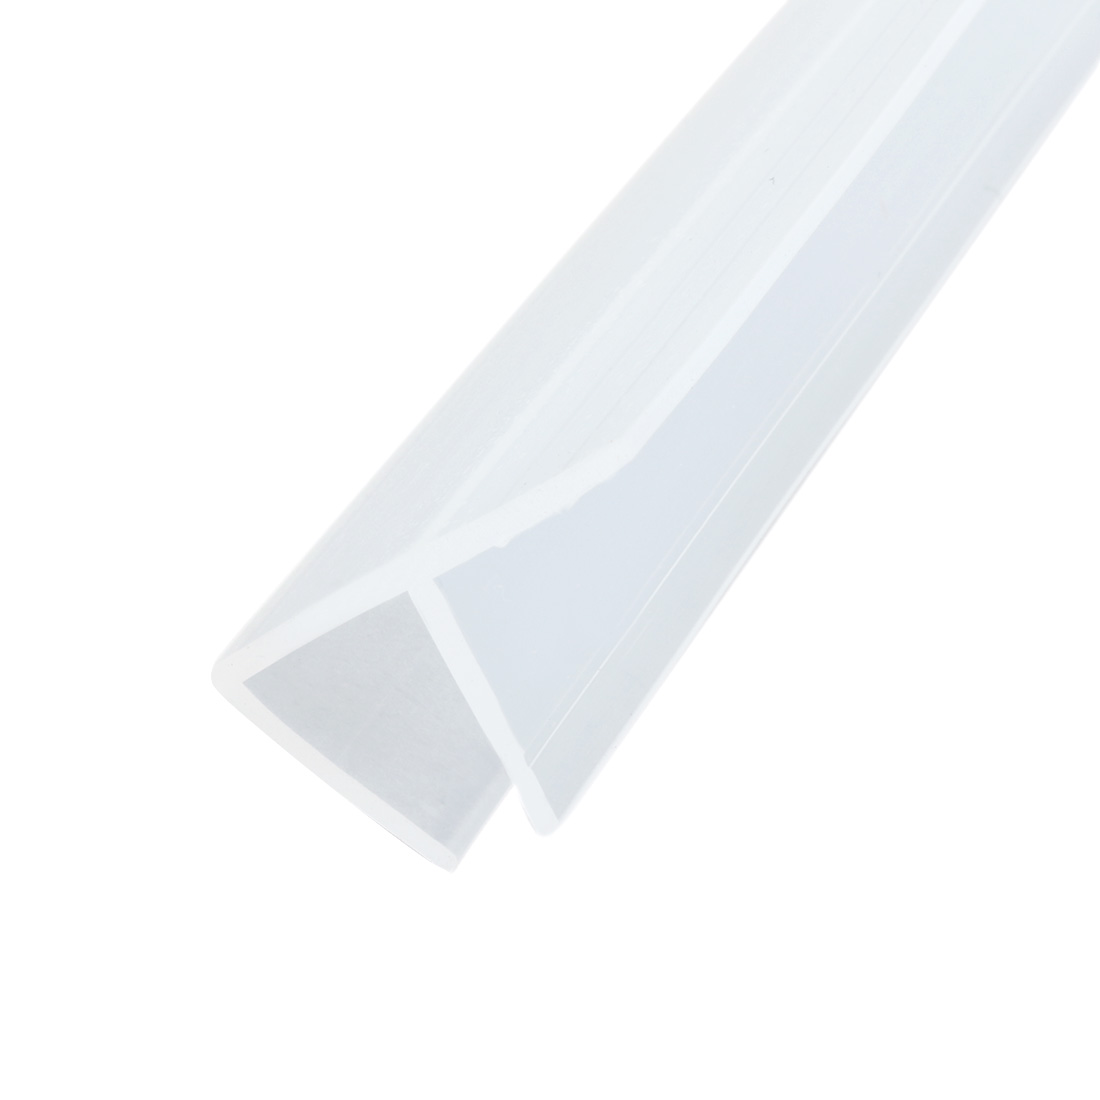 78 7 Inch F Shaped Frameless Window Shower Door Seal Clear For 10mm Glass